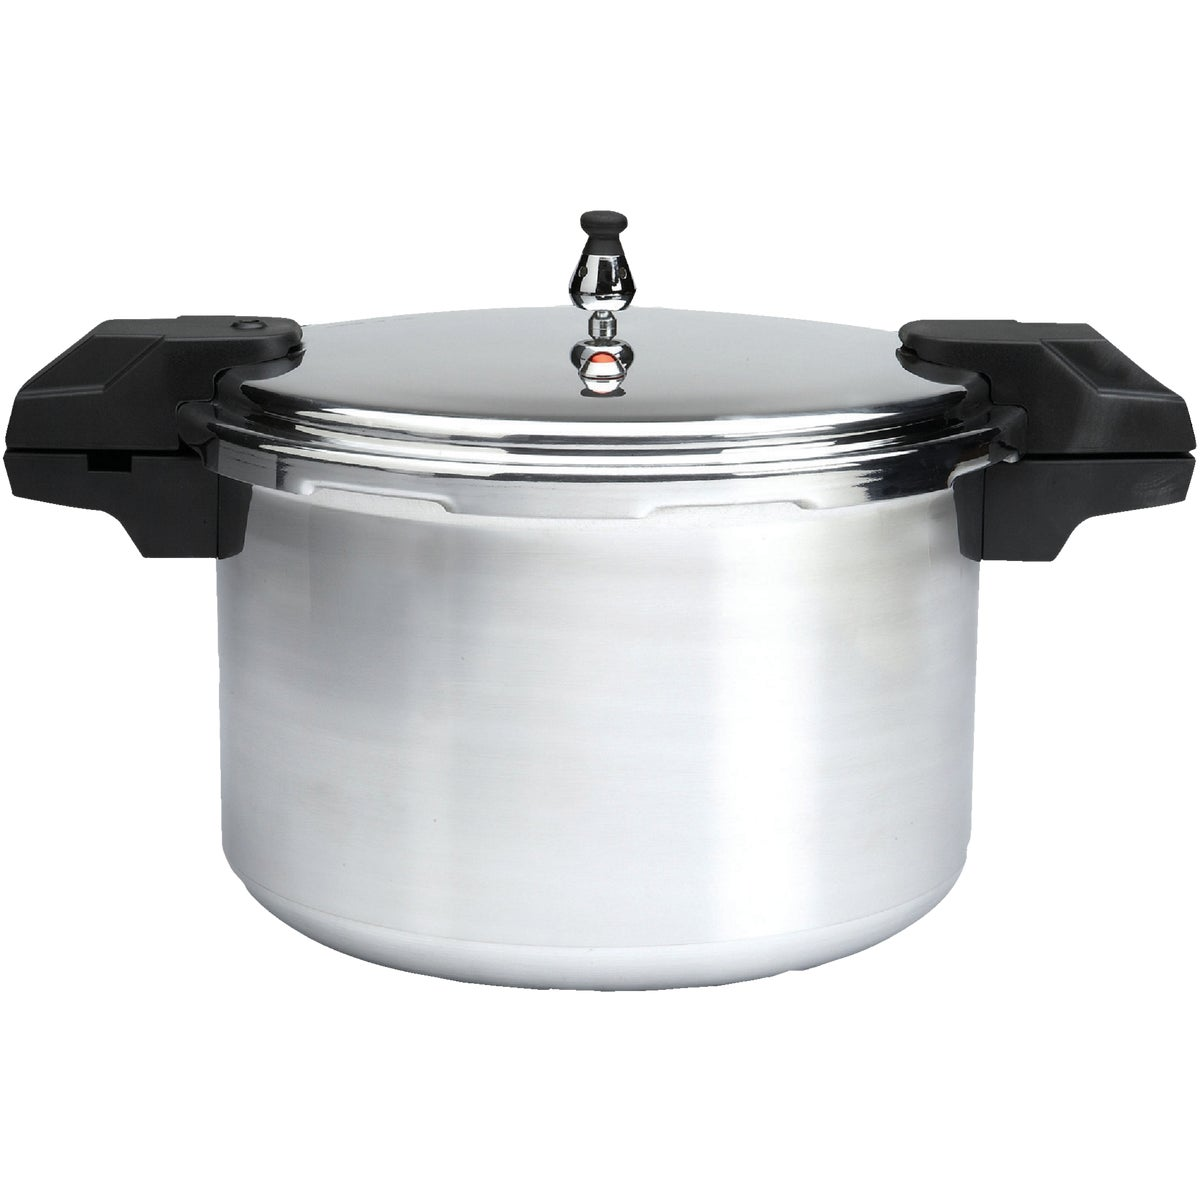 16QT PRESSURE COOKER - 92116 by T Fal Wearever